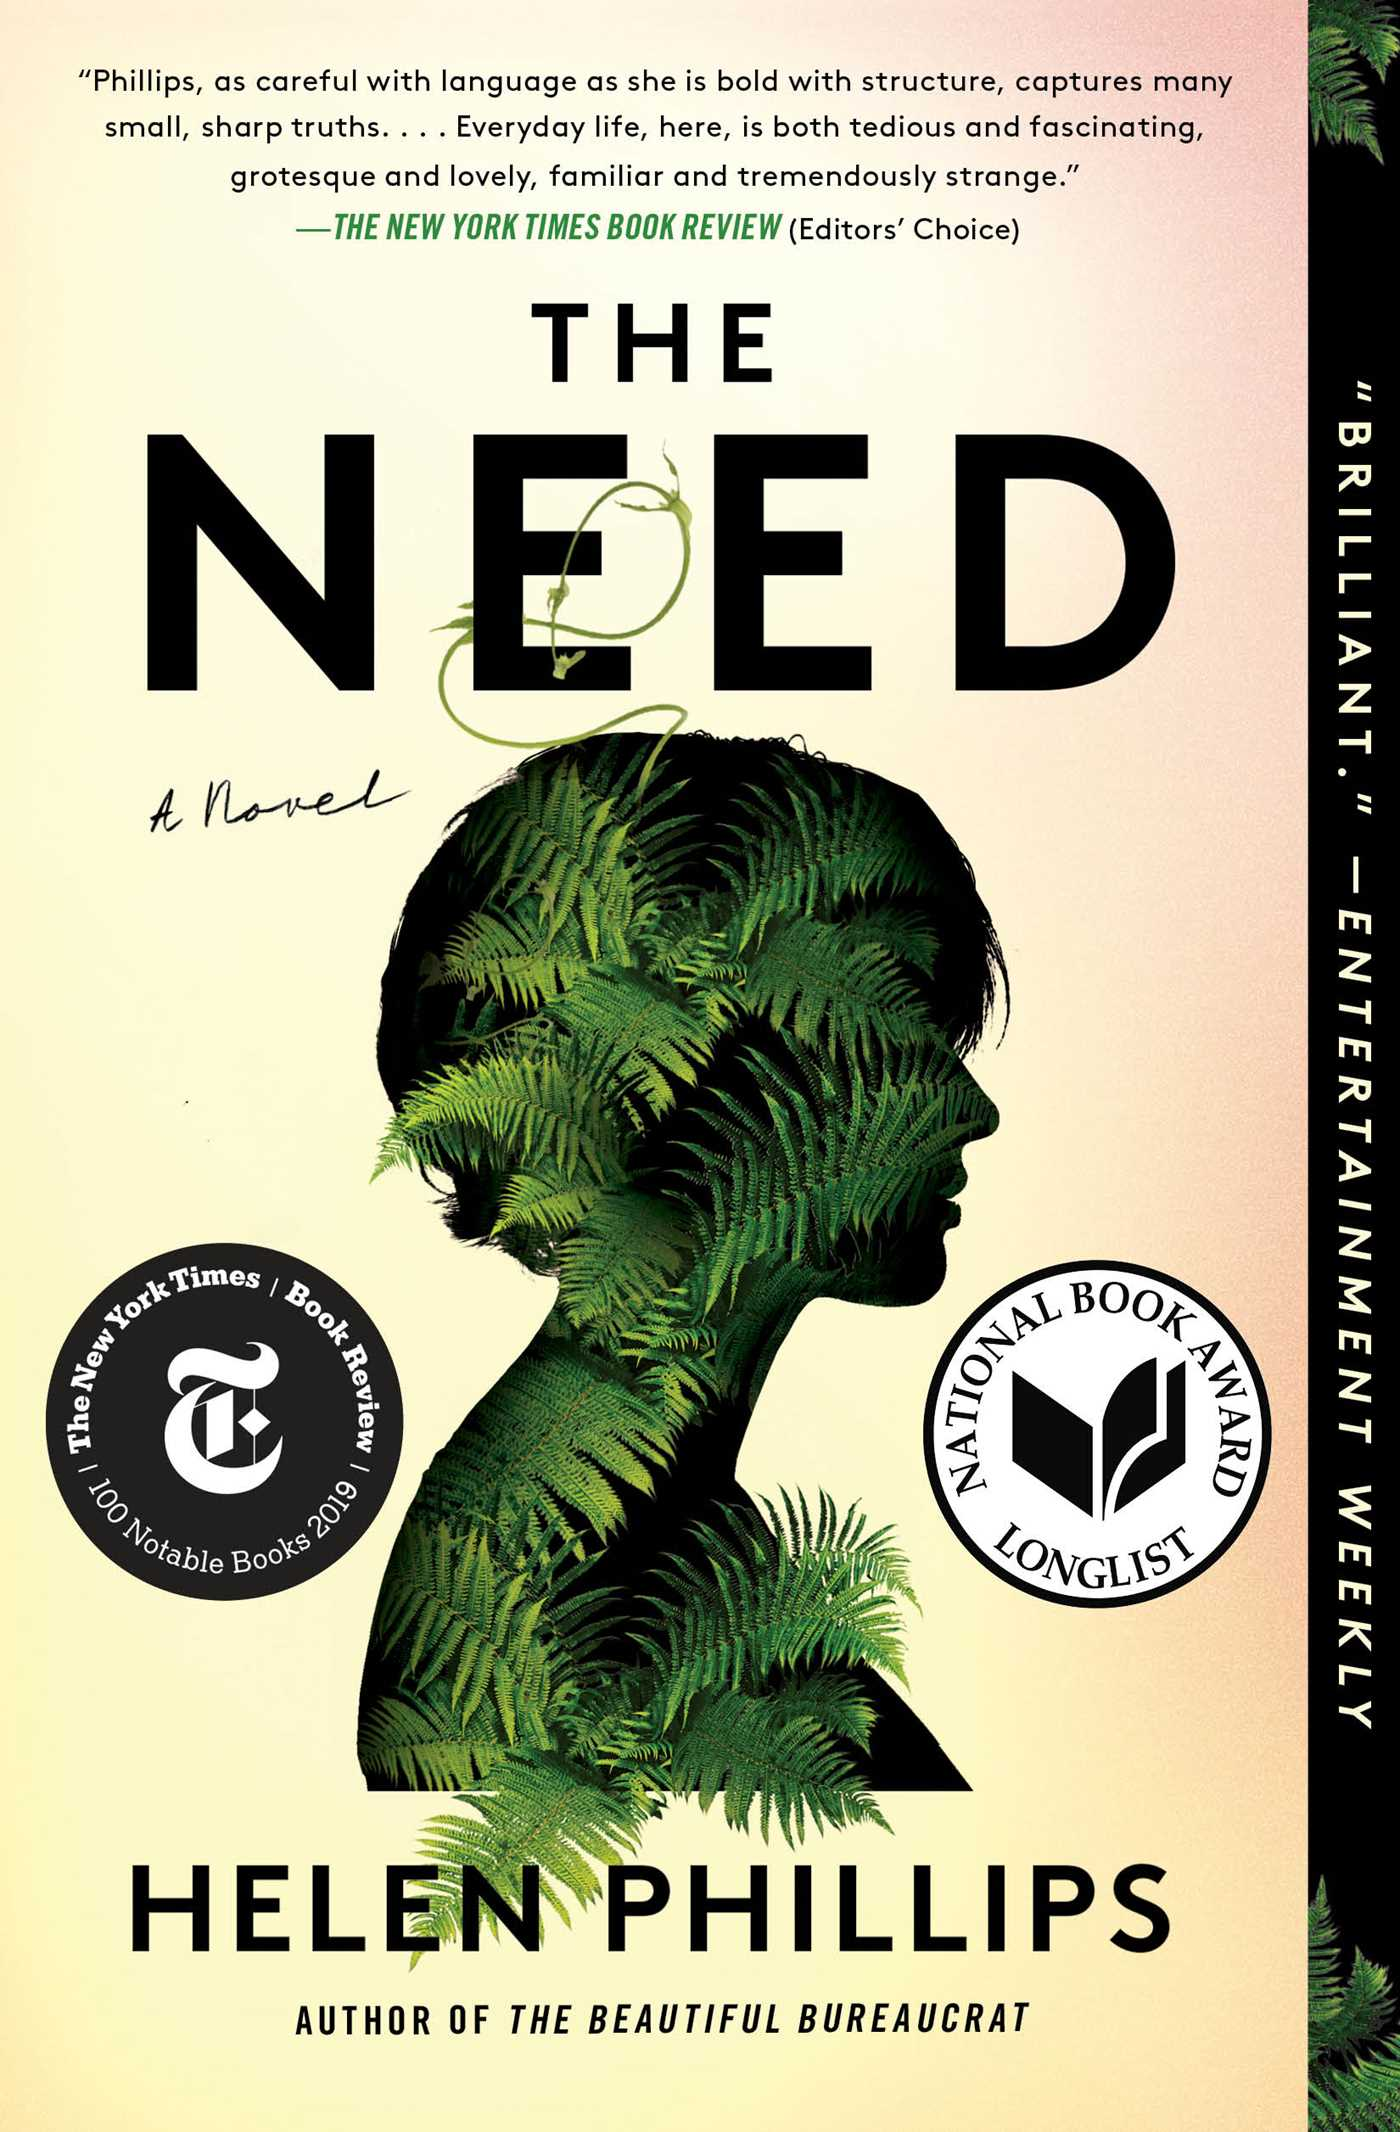 cover of Helen Phillips	The Need. Simon & Schuster, 2019.	PS3616 .H45565 N44 2019